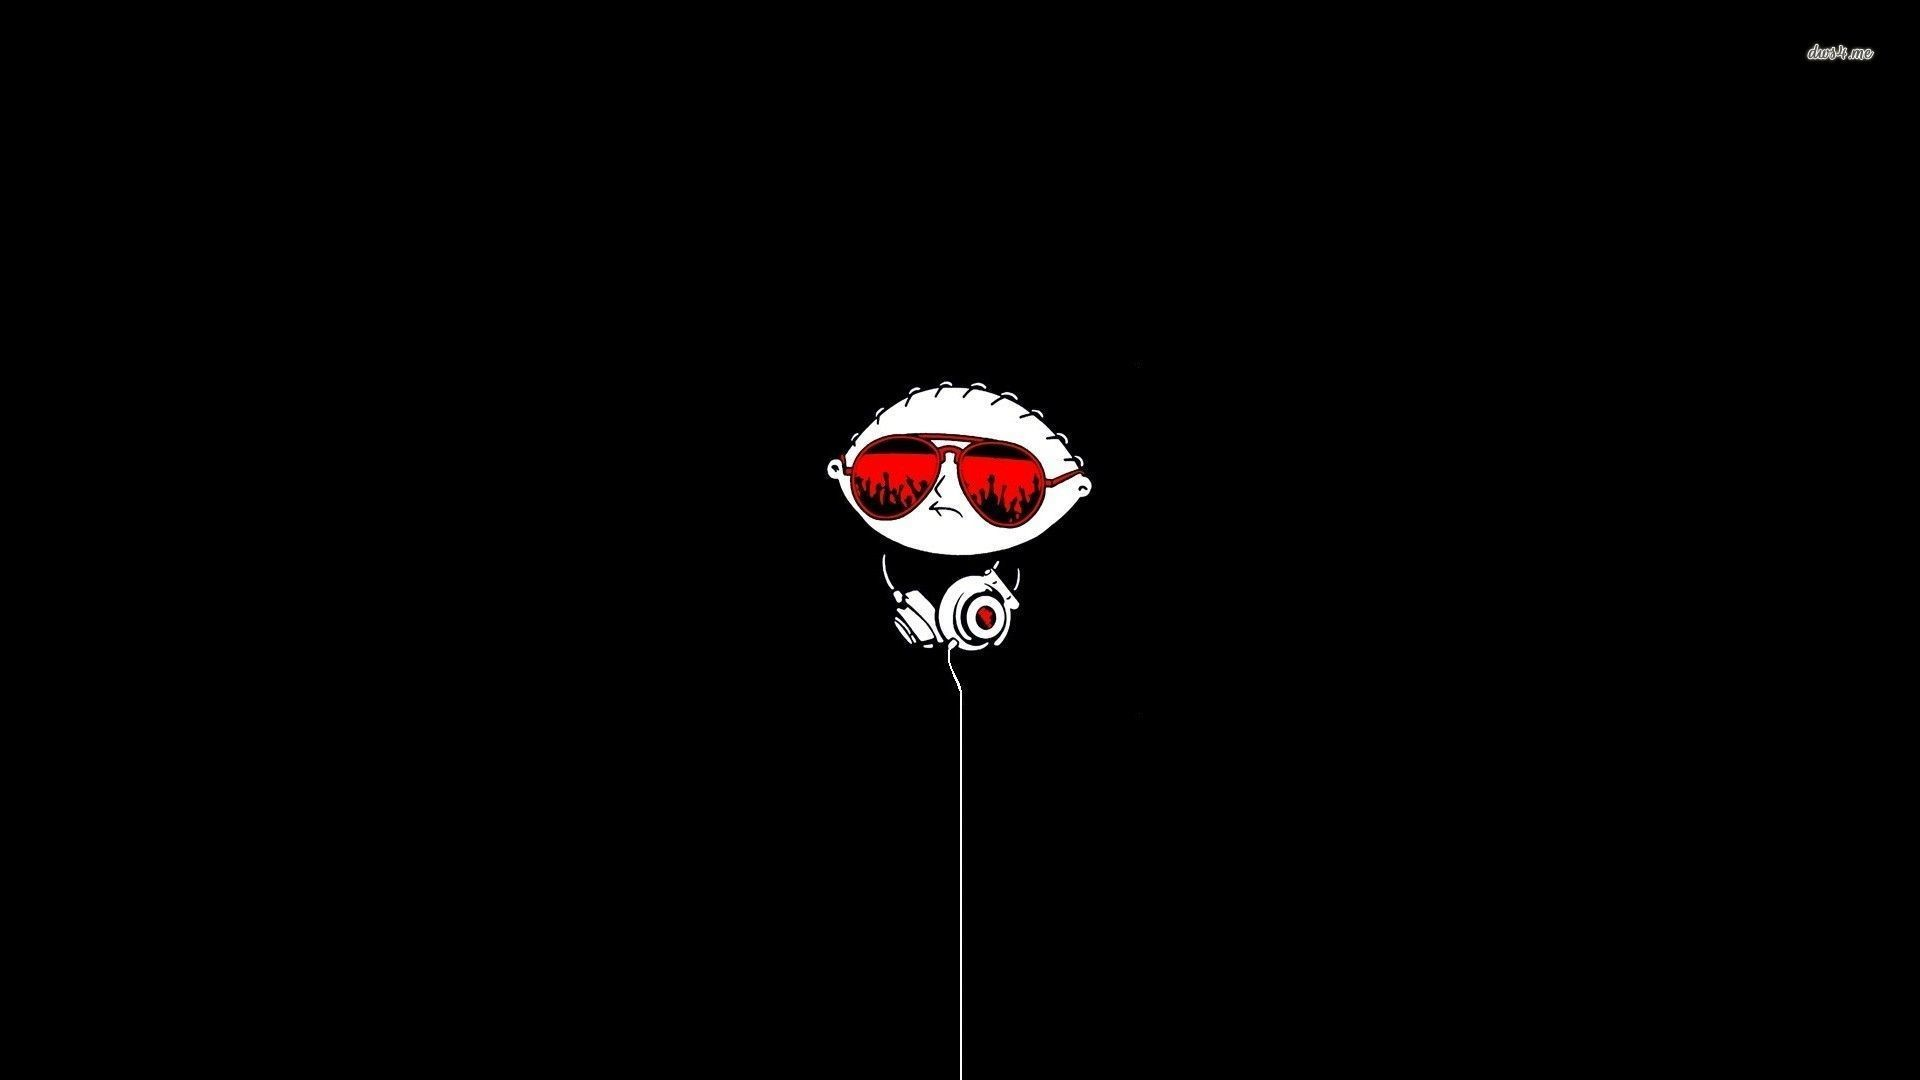 DJ Stewie Griffin from Family Guy wallpaper – Cartoon wallpapers .